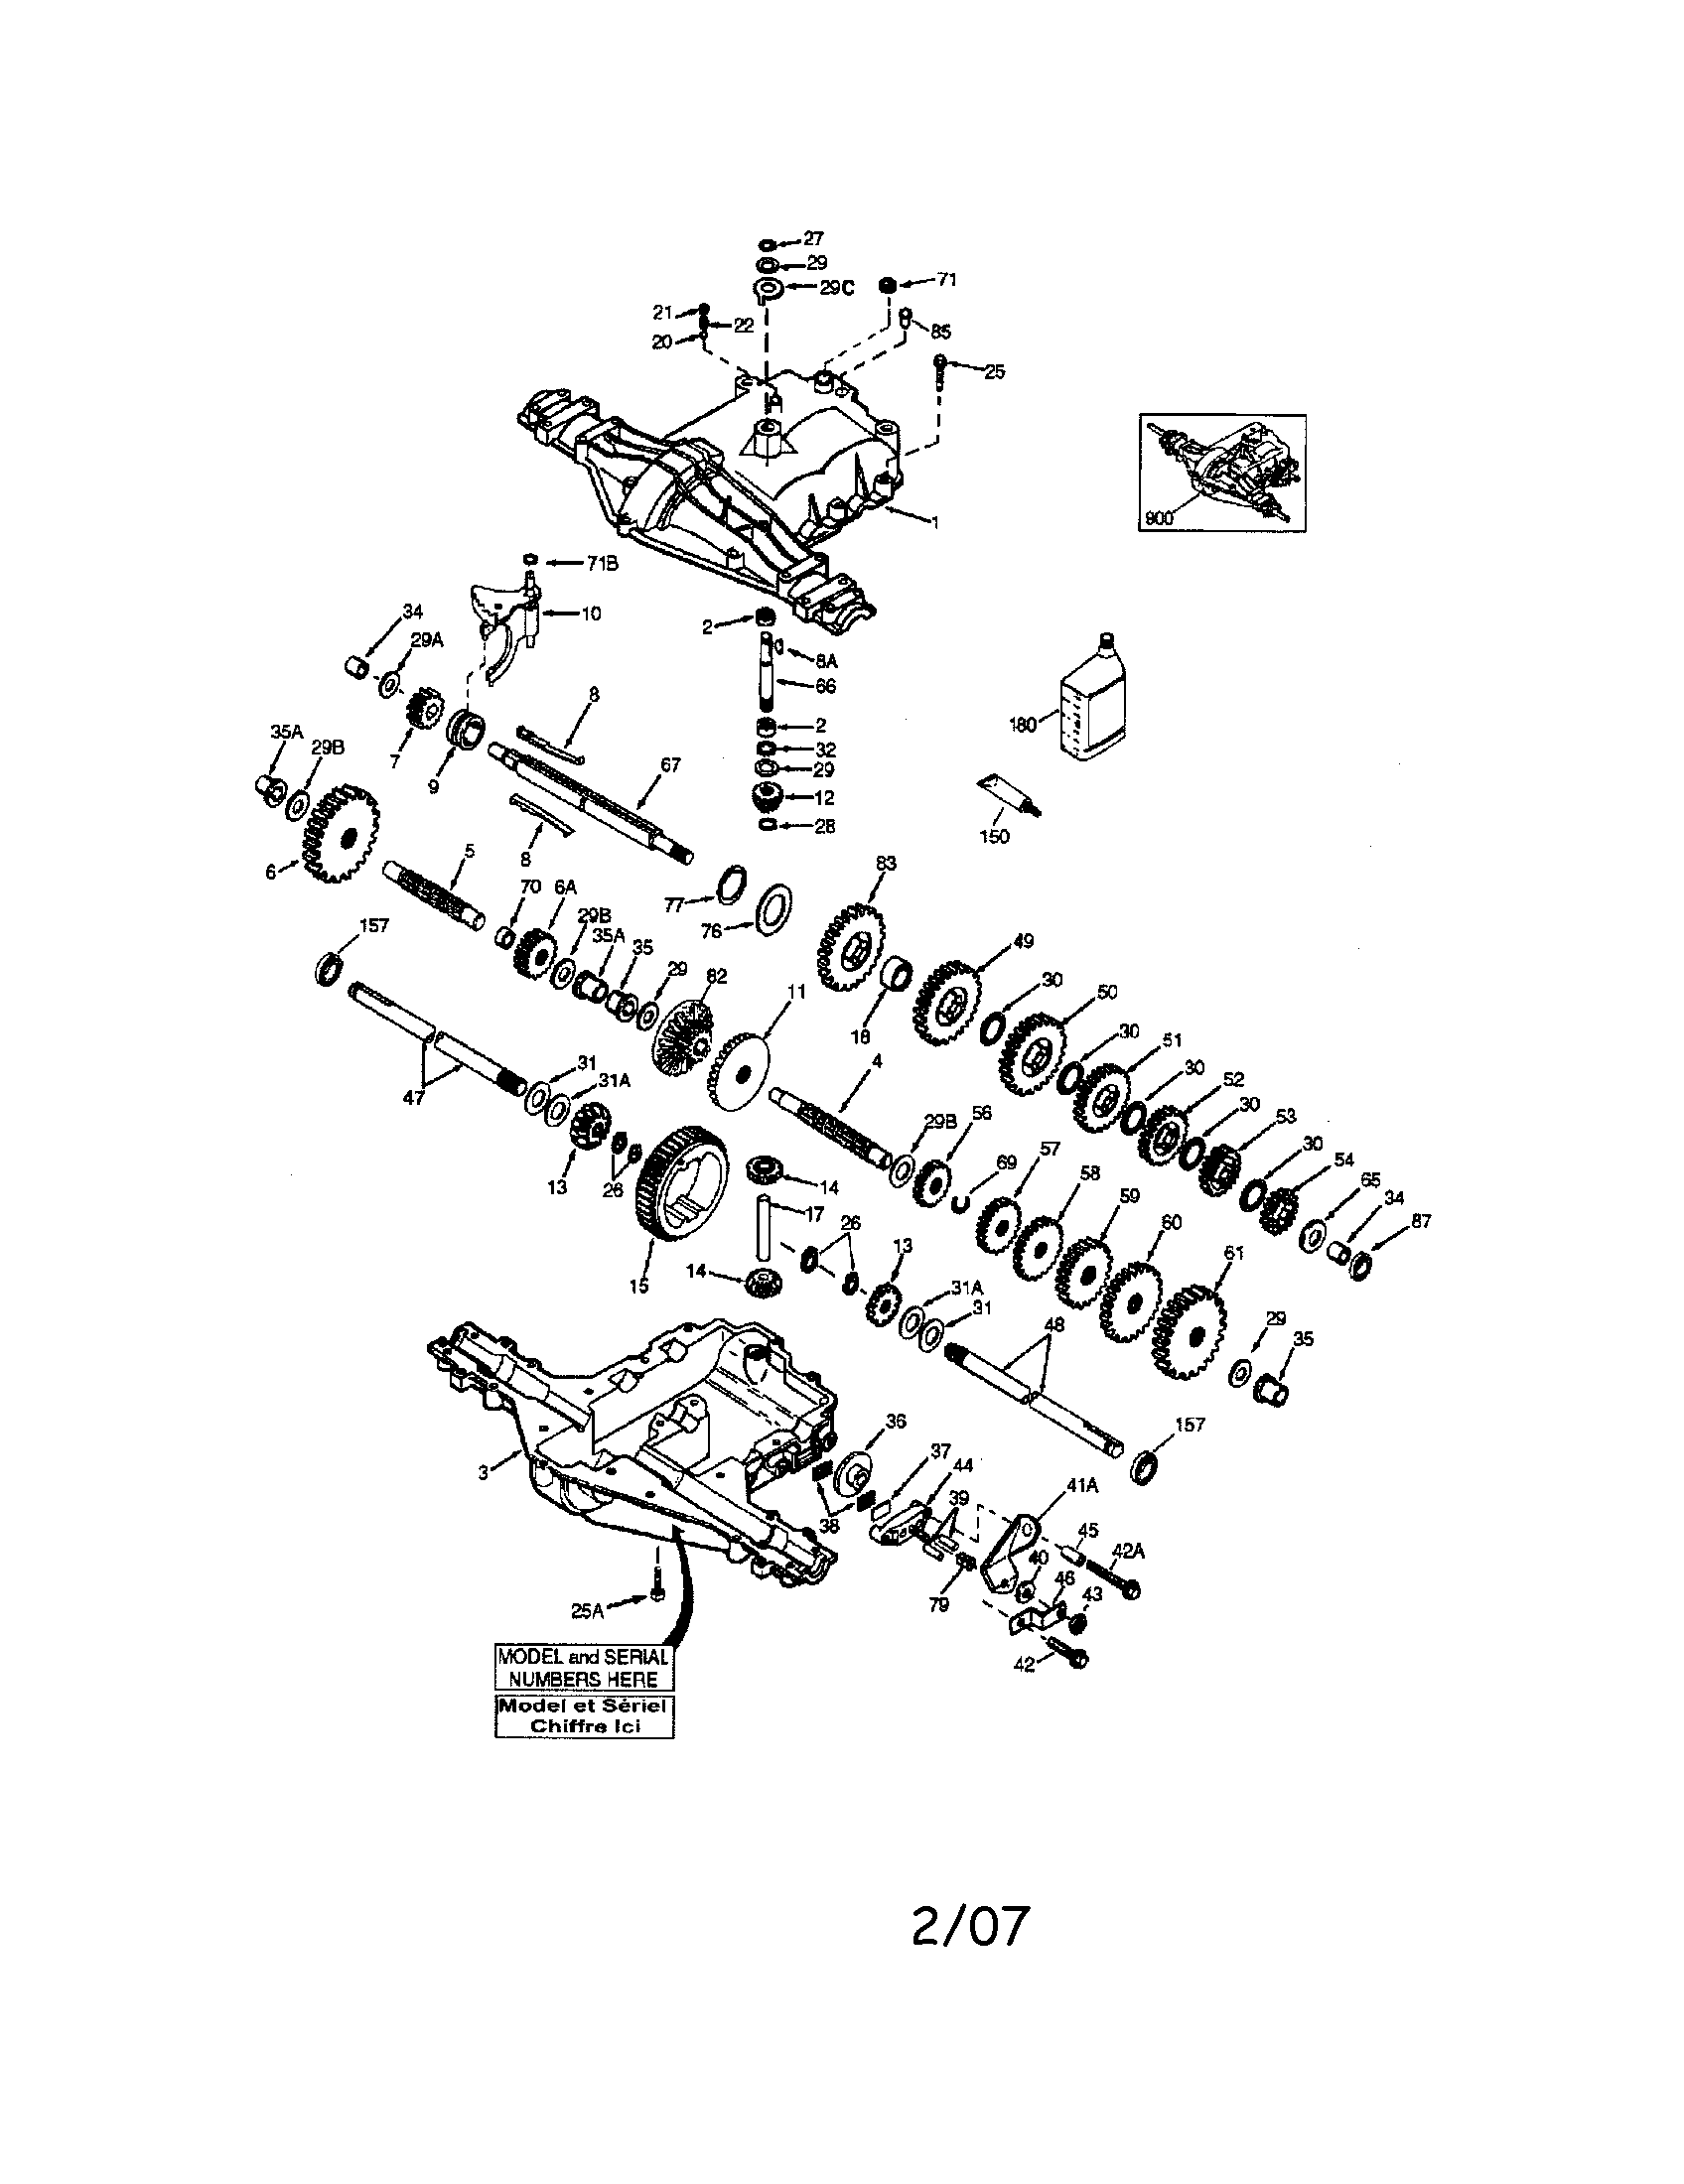 hight resolution of peerless transaxle diagram parts list for model 917270812 craftsman parts riding mower